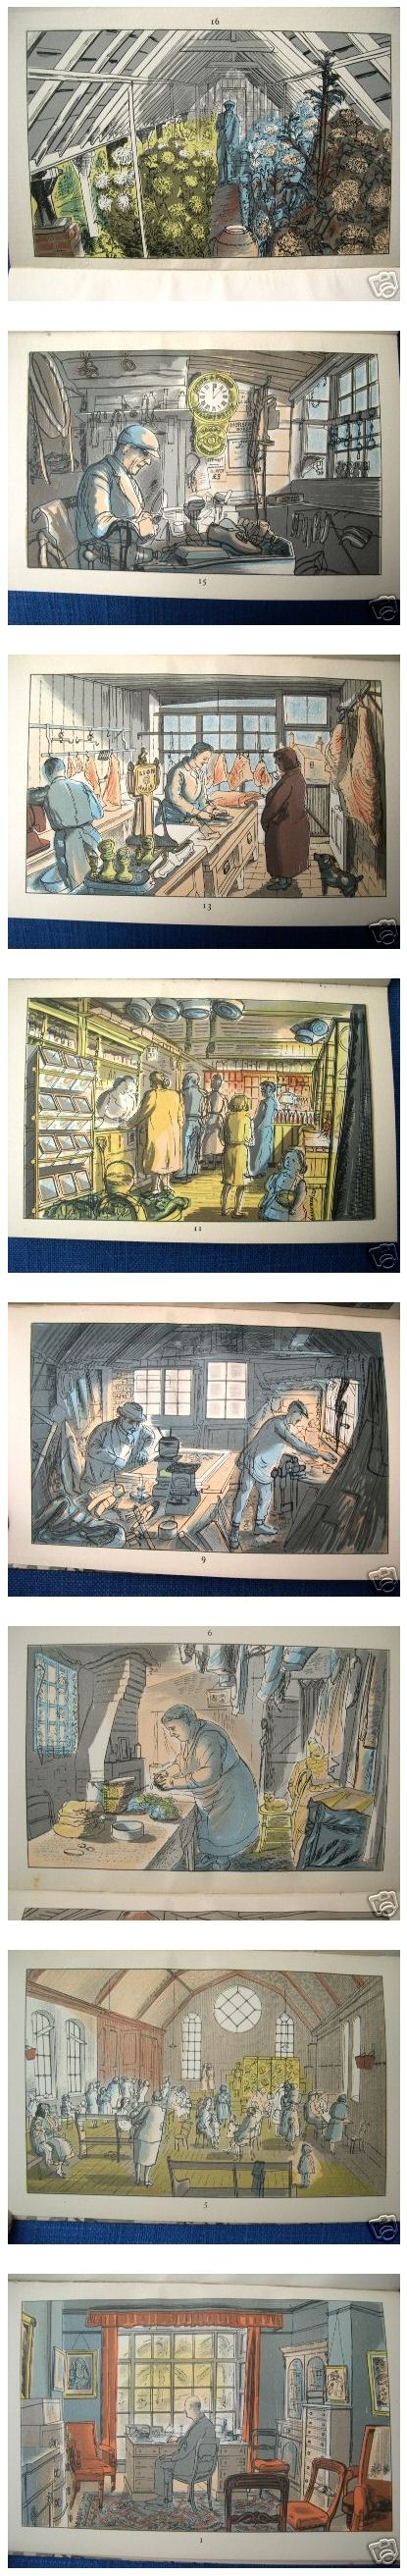 'Life in An English Village' a book from 1949 containing sixteen lithographs by Edward Bawden.